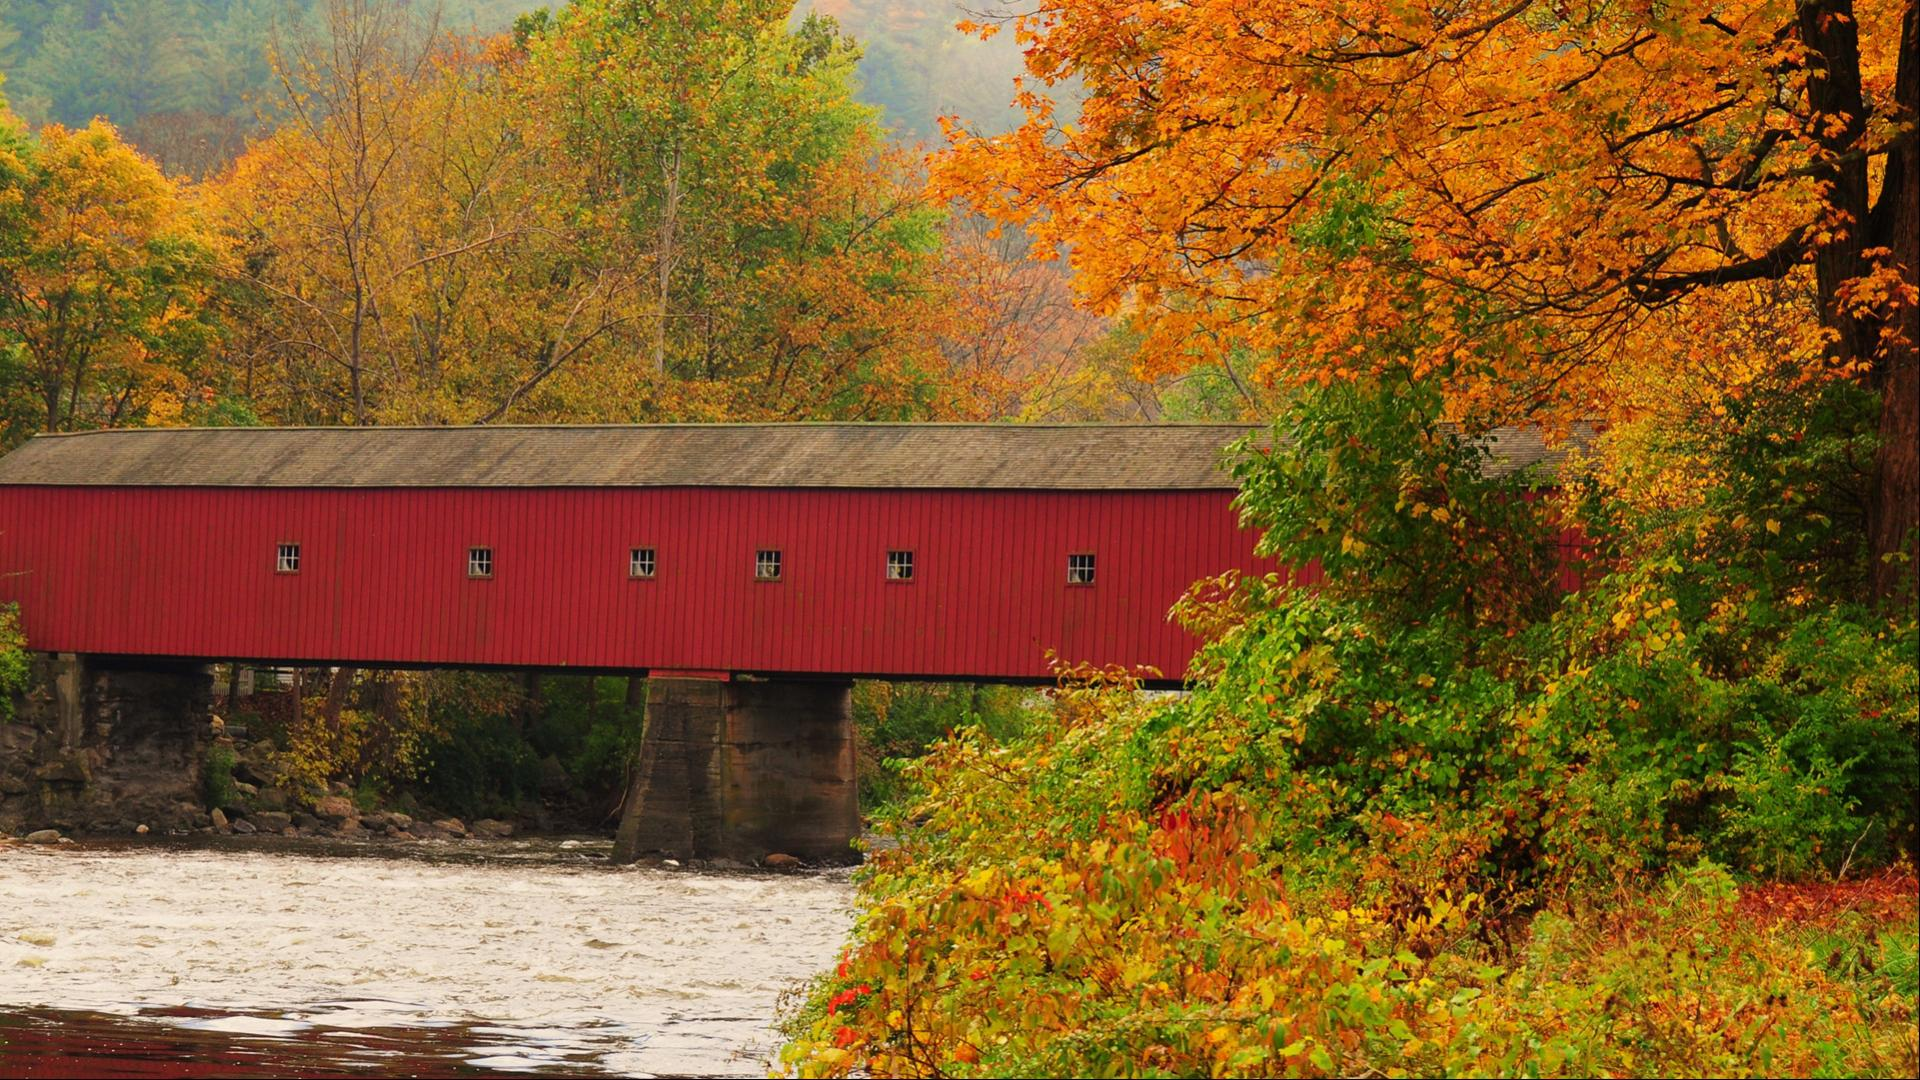 Autumn New England Desktop Wallpaper Covered Bridge Hd Wallpapers Wallpapers Download High Resolution Wallpapers